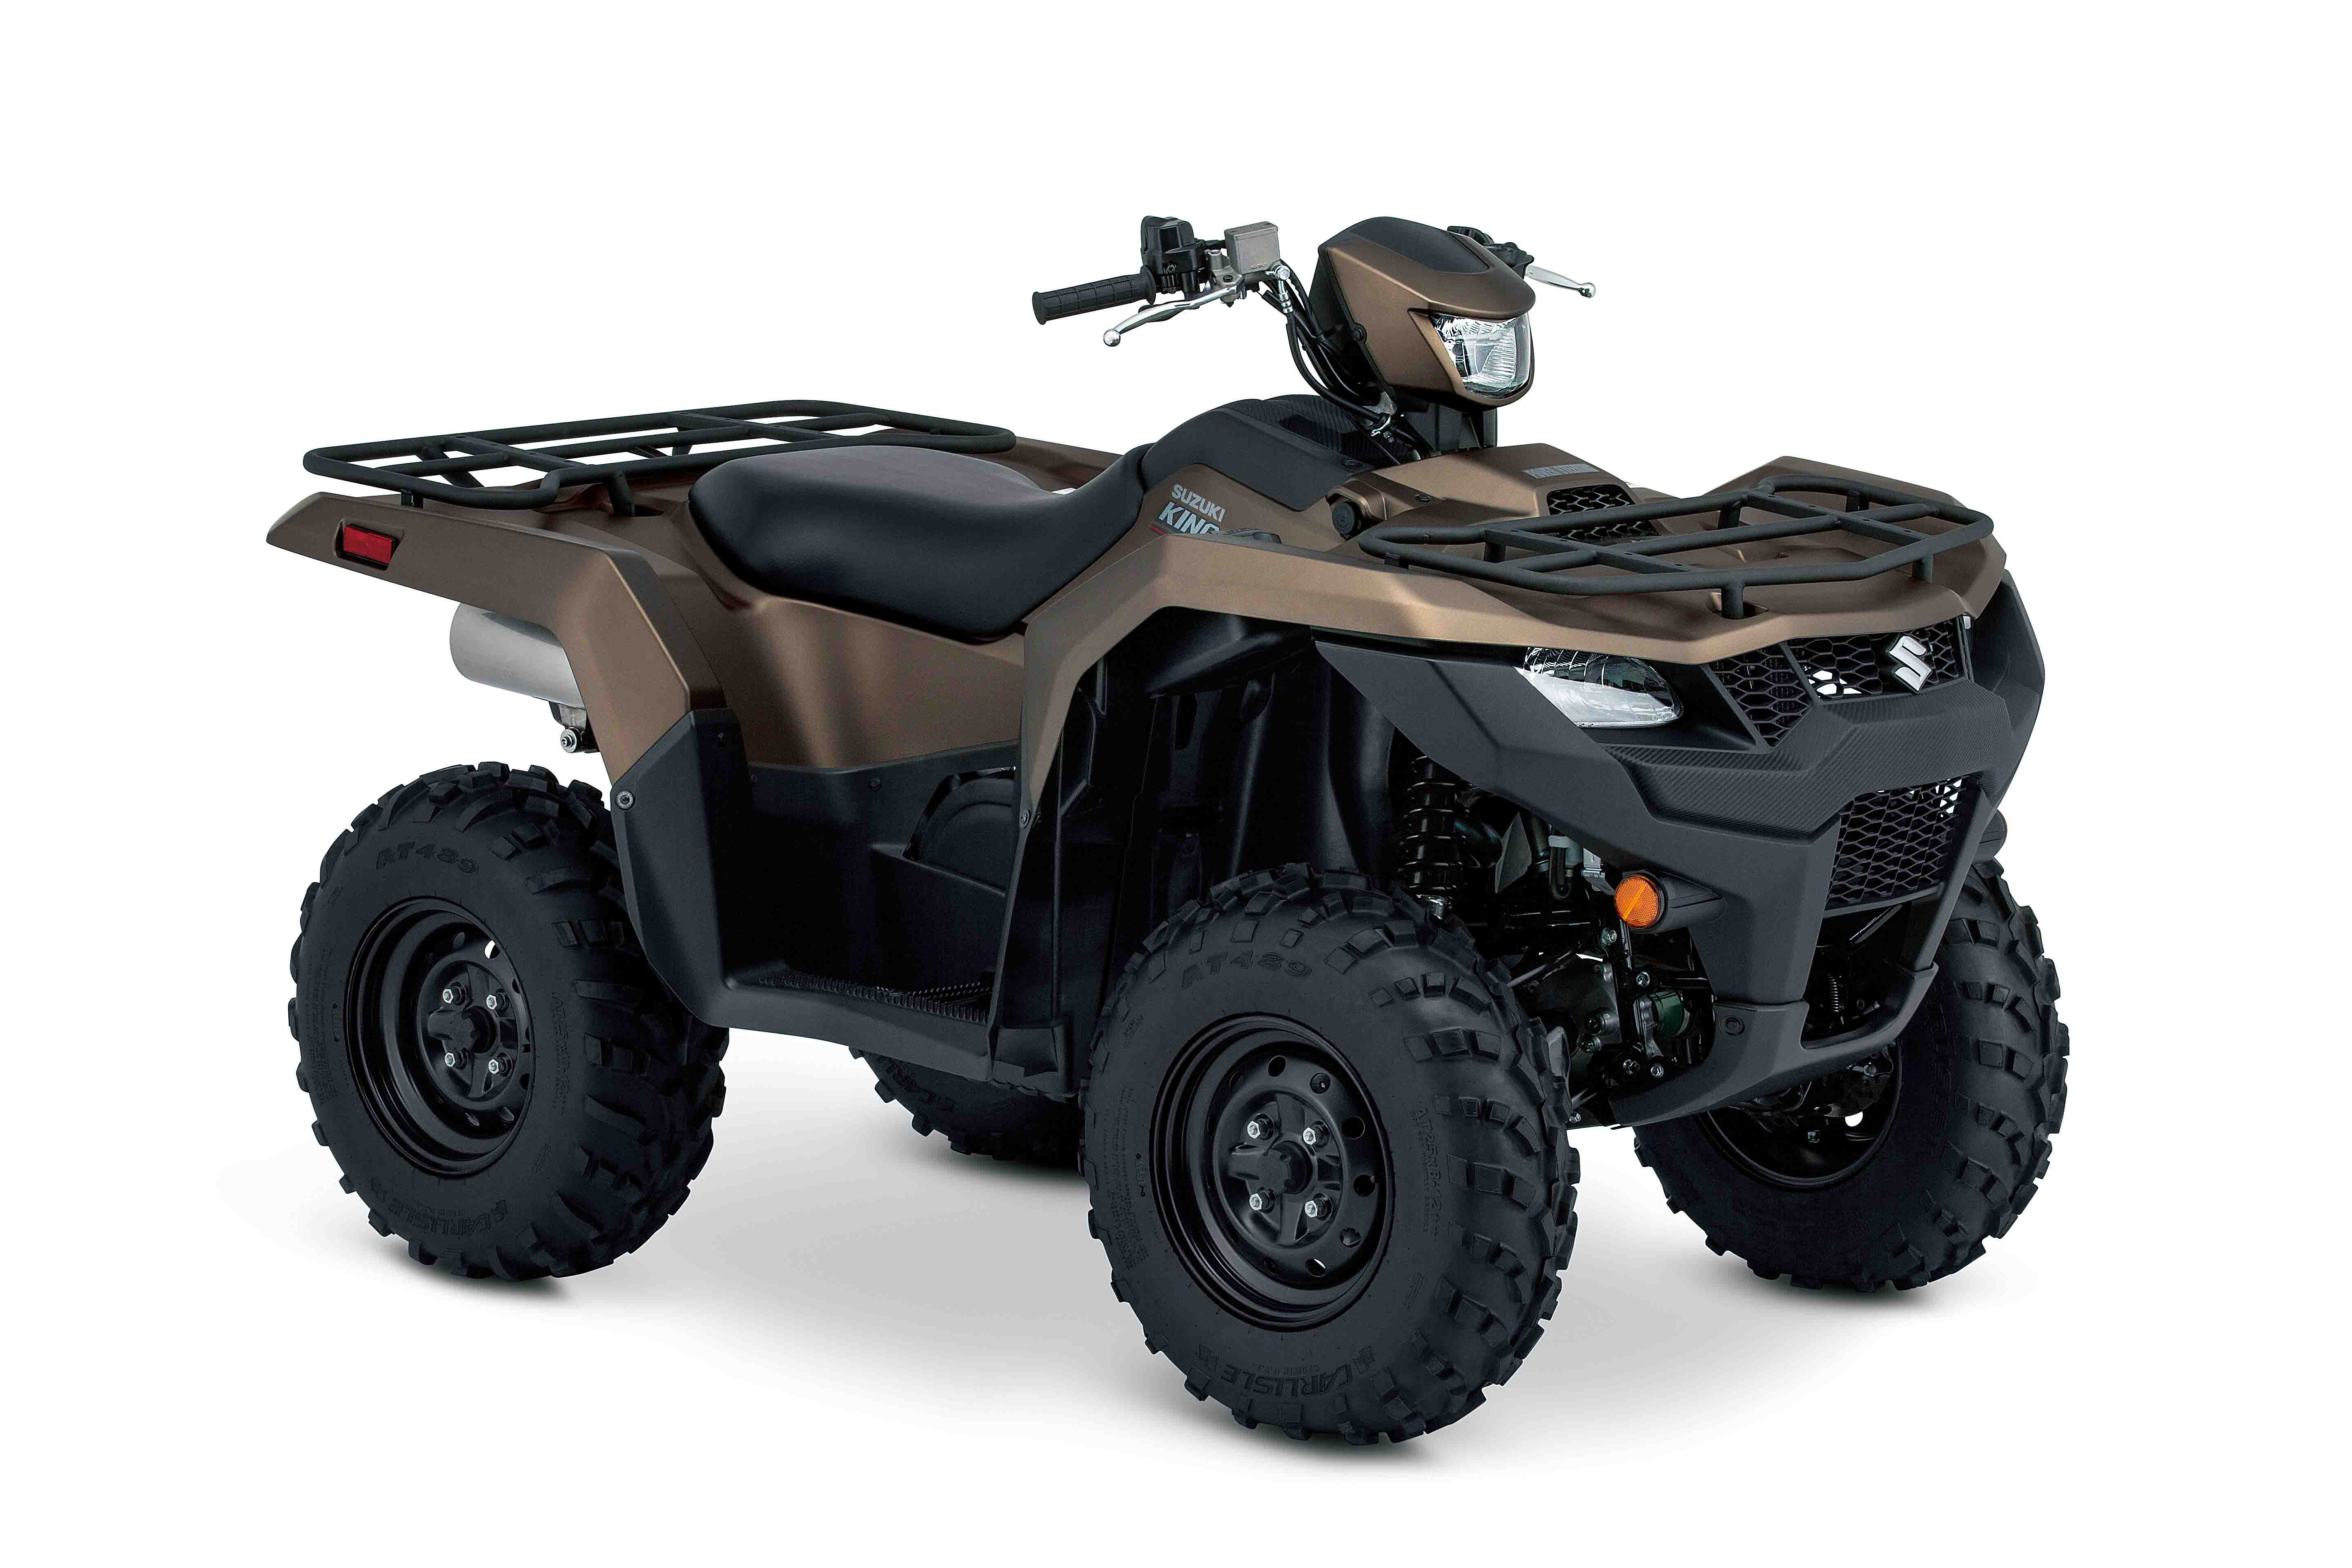 Suzuki KINGQUAD 500 PS